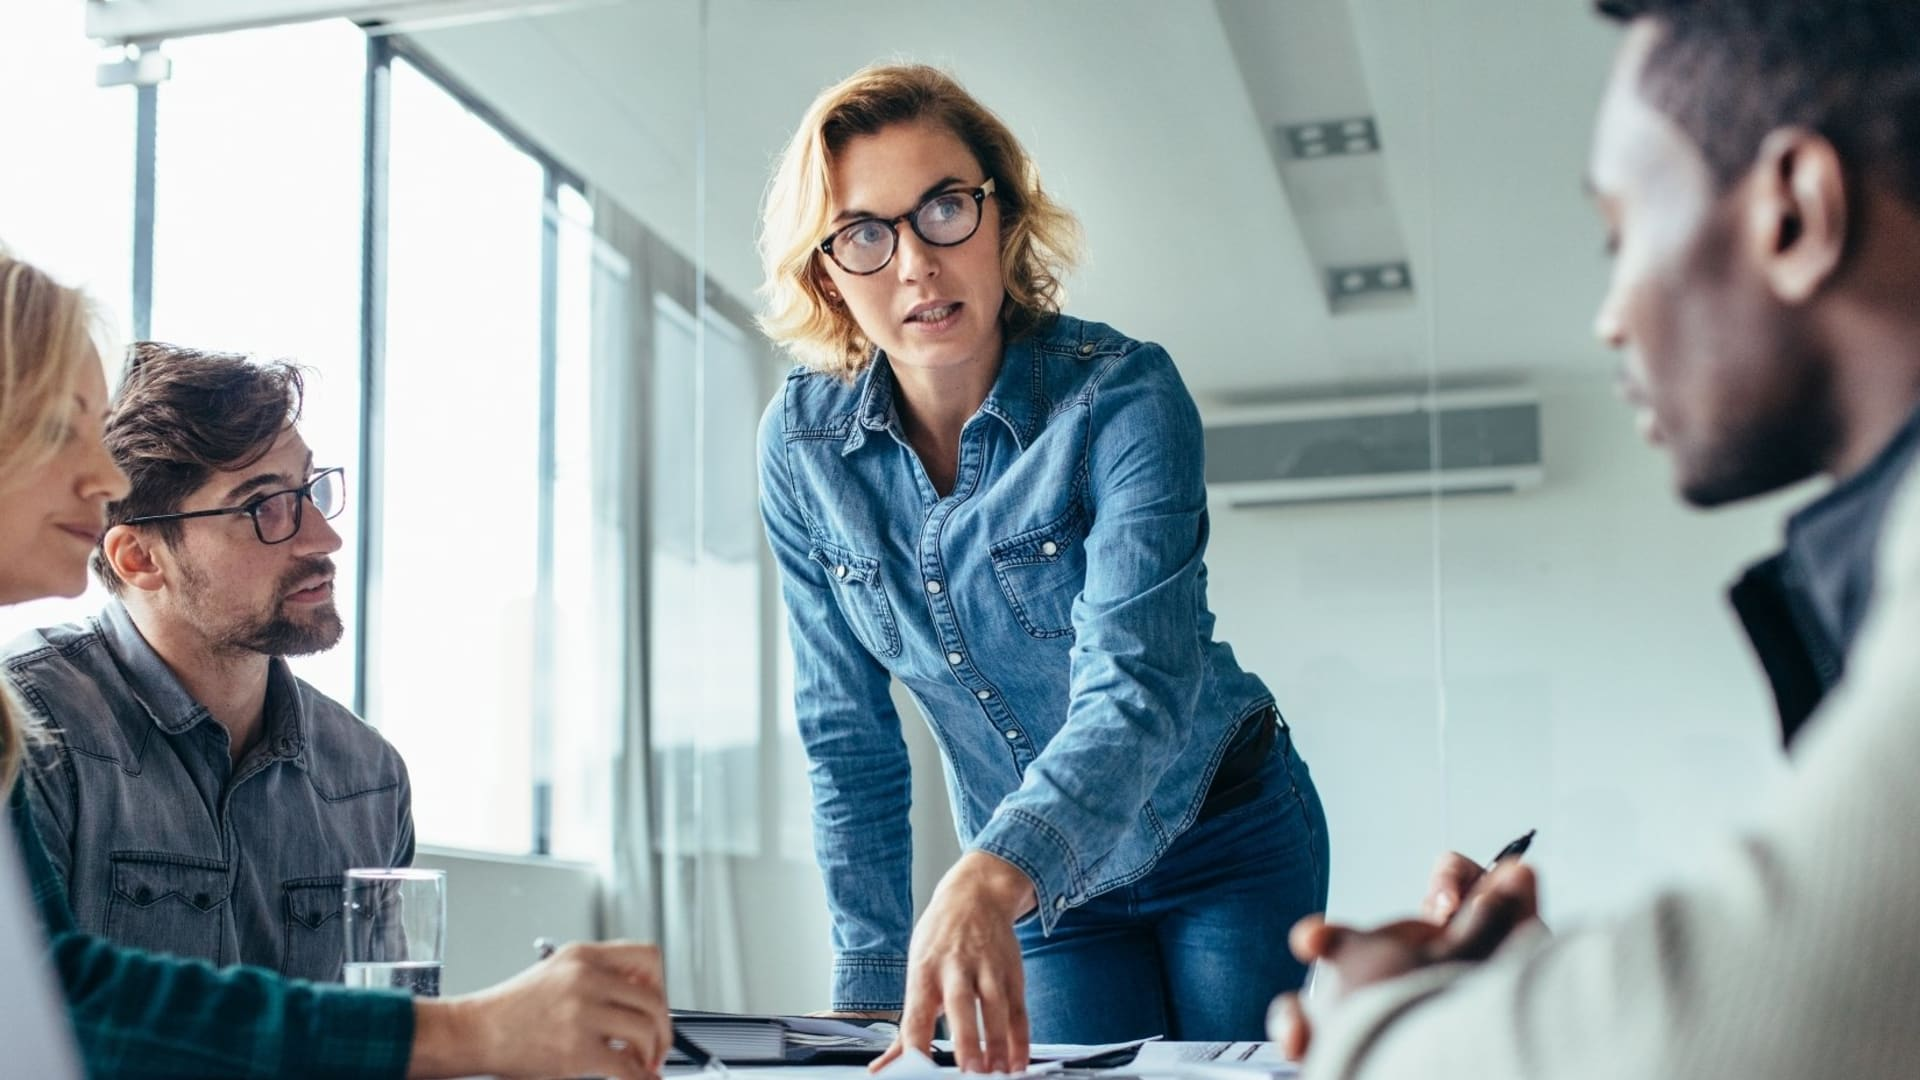 How Do Other People Experience You? These 4 Things Determine Your Leadership Profile